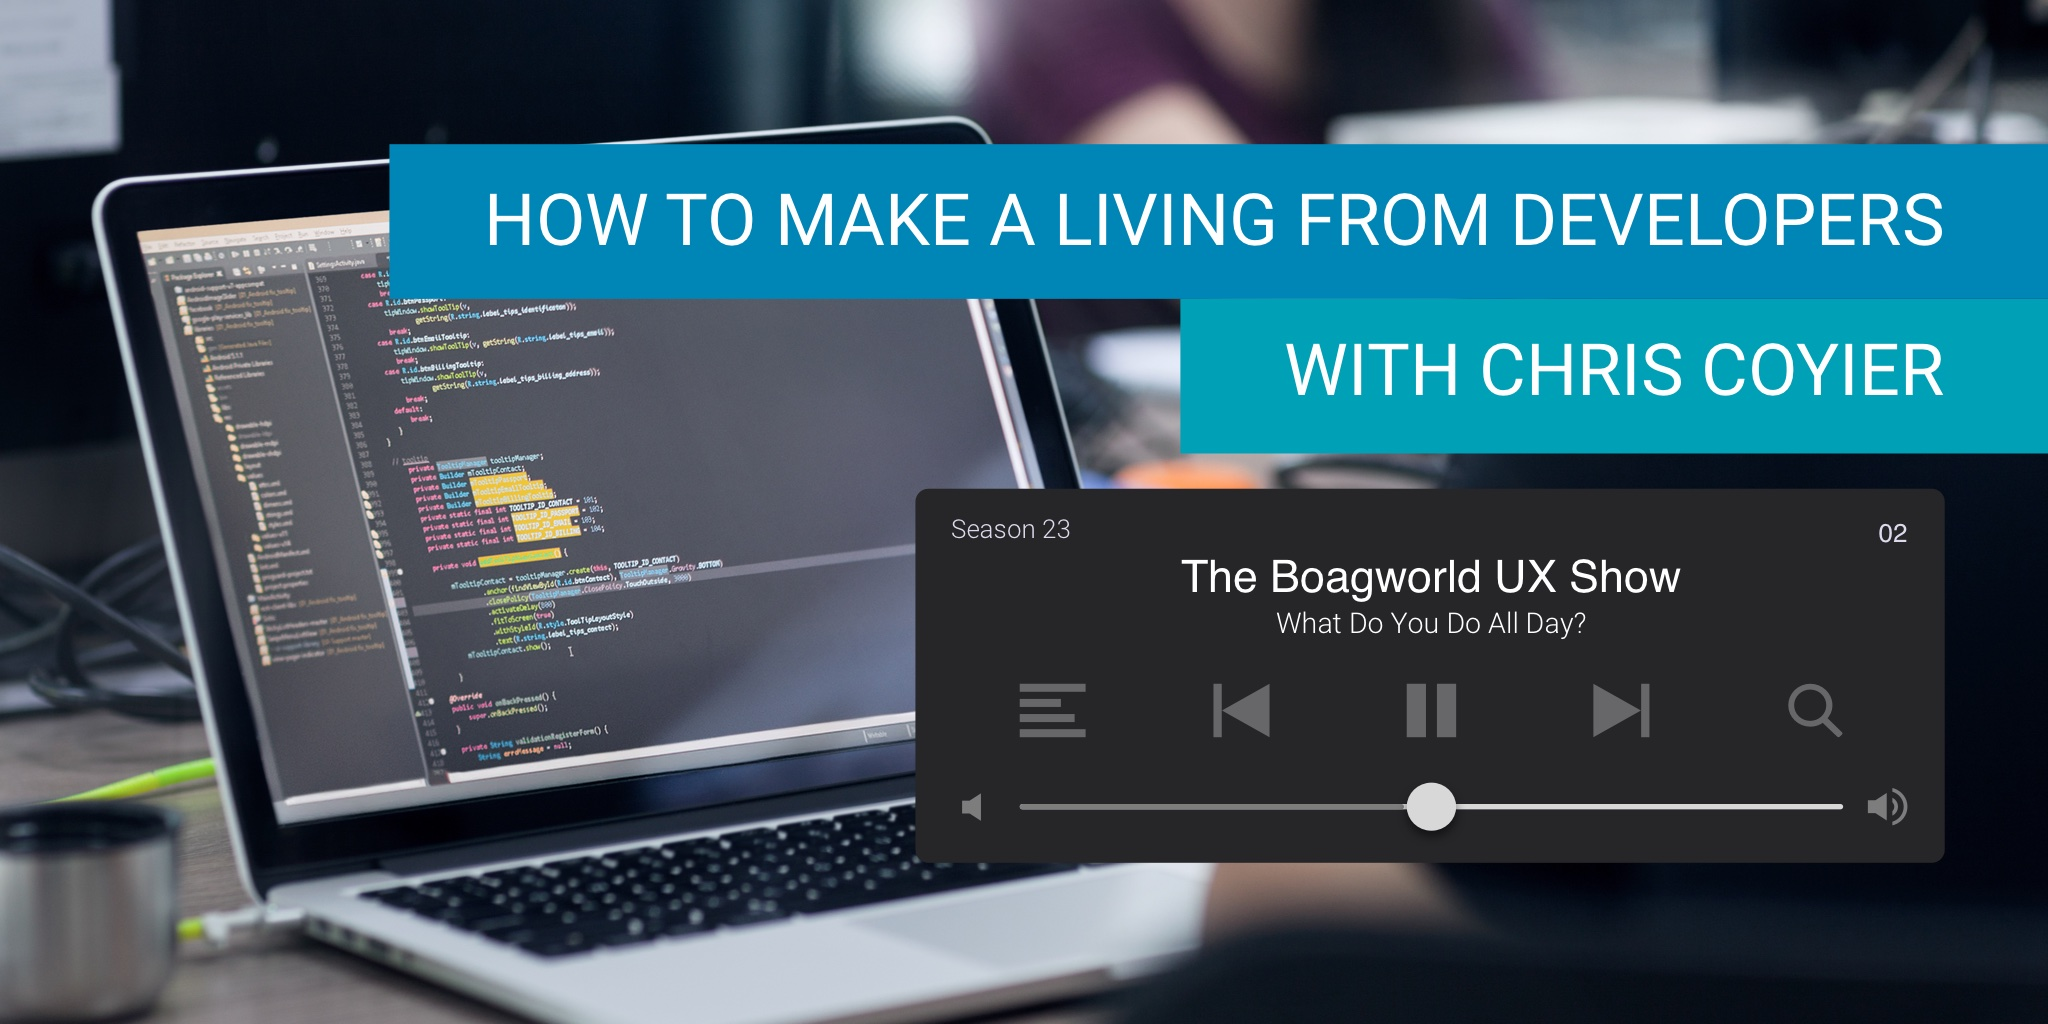 How to Make A Living From Developers With Chris Coyier - Boagworld Show